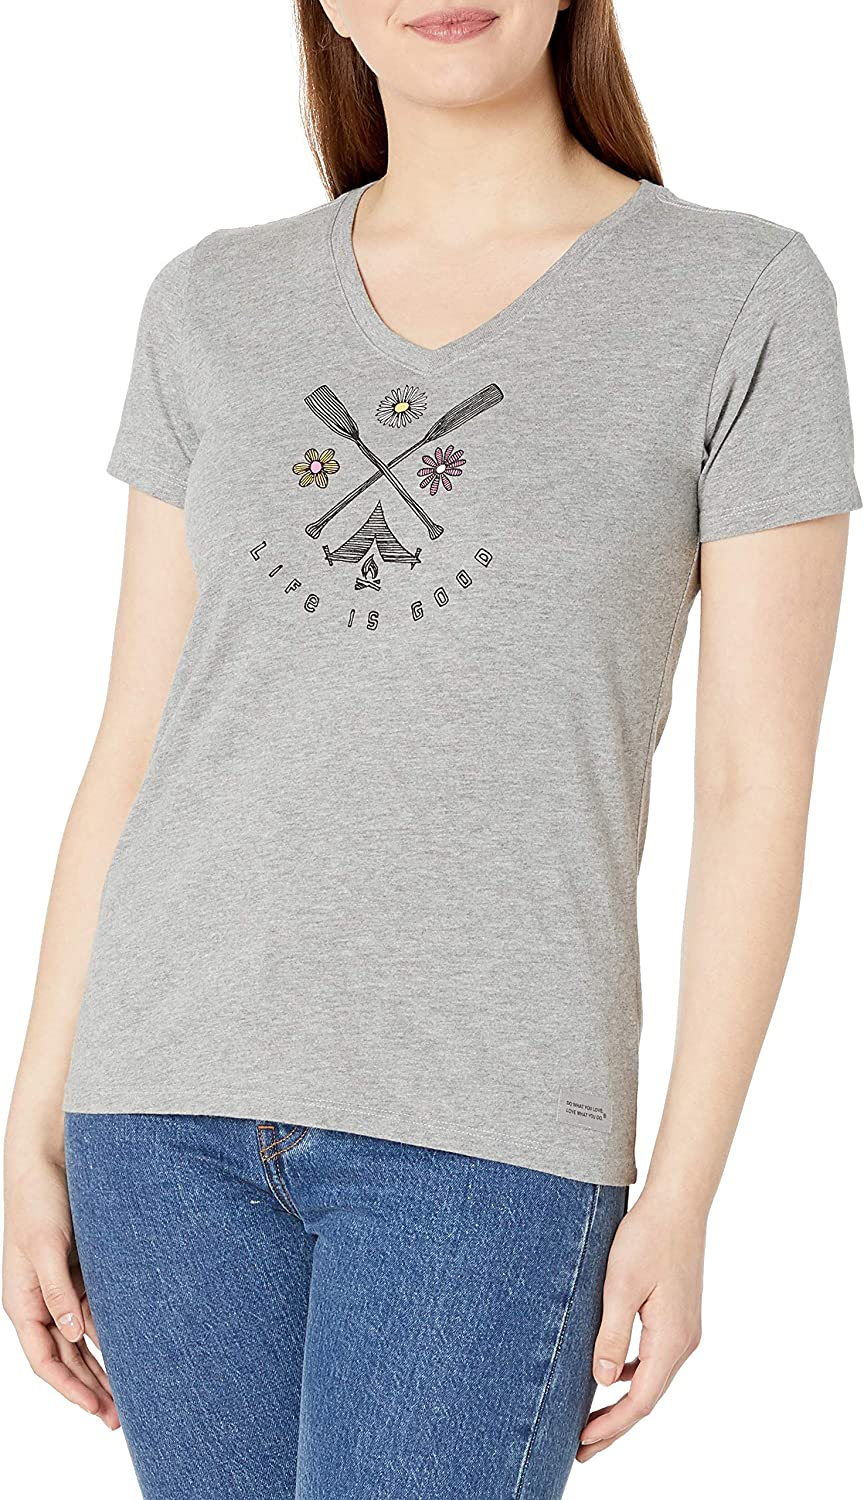 Life is Good Women's Crusher 25% OFF Ranking integrated 1st place Daisy Vee Mandala T-Shirt